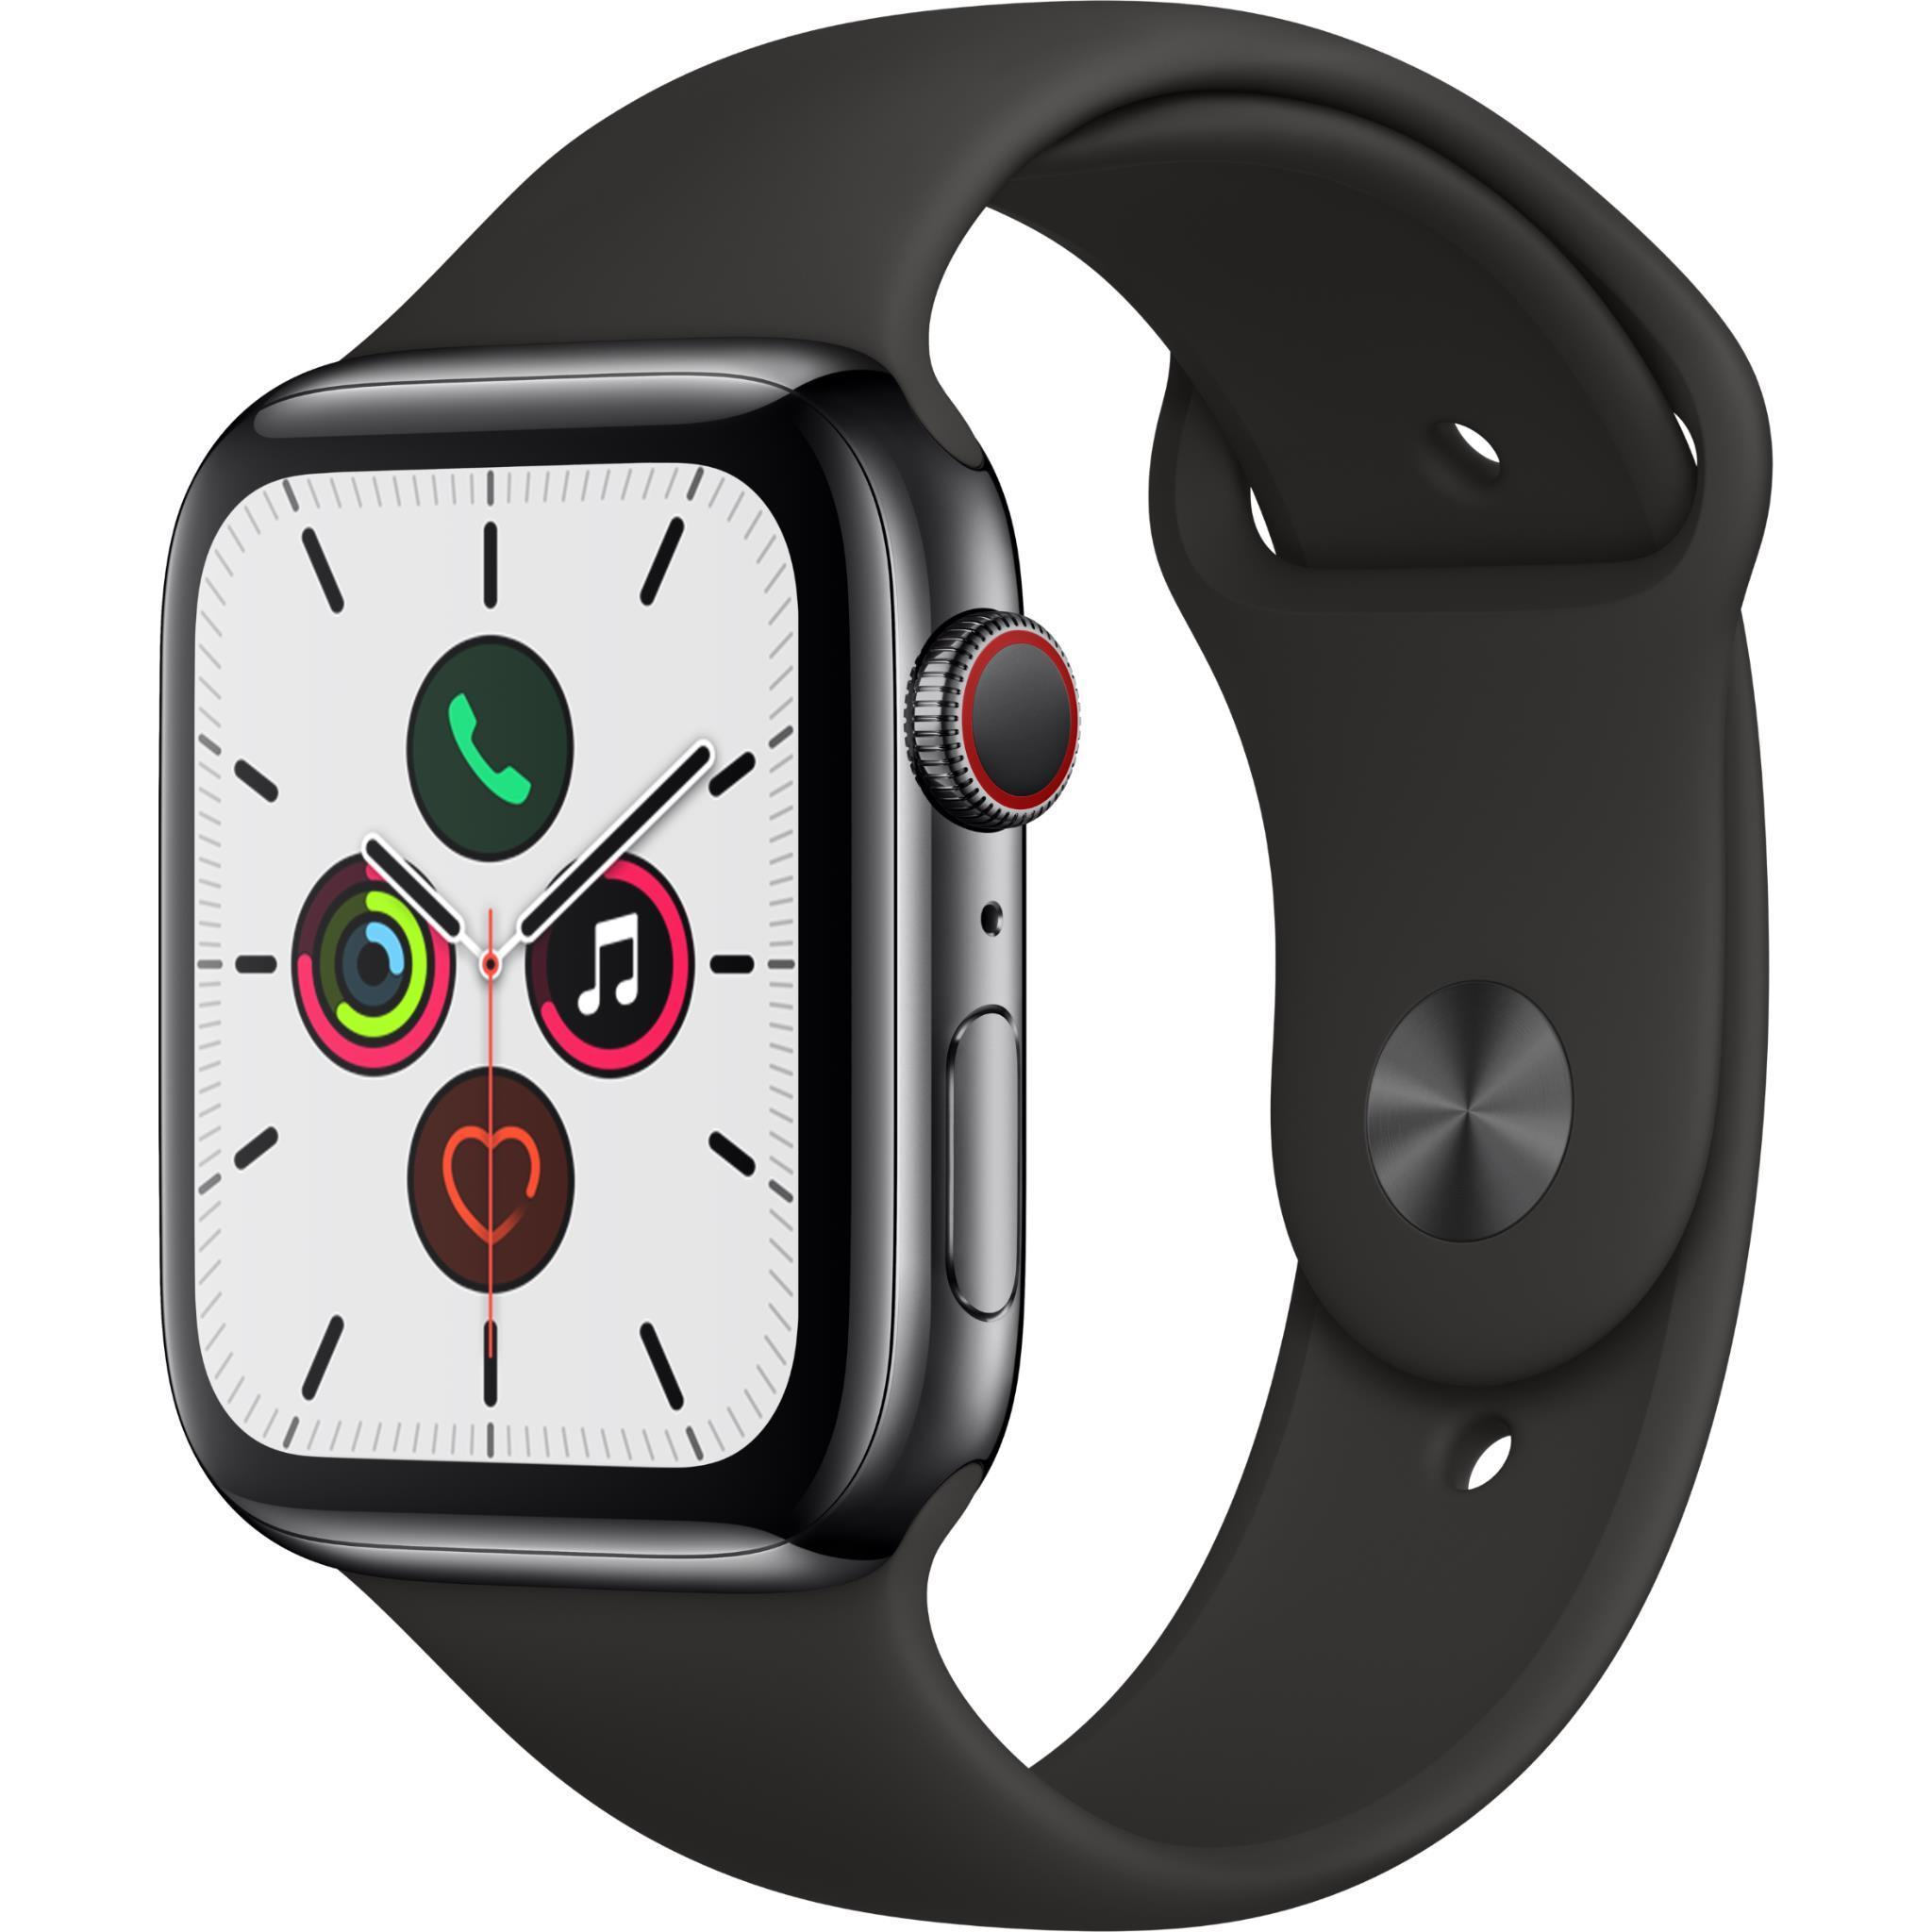 Apple Watch Series 5 44mm Space Black Stainless Steel Case GPS + Cellular